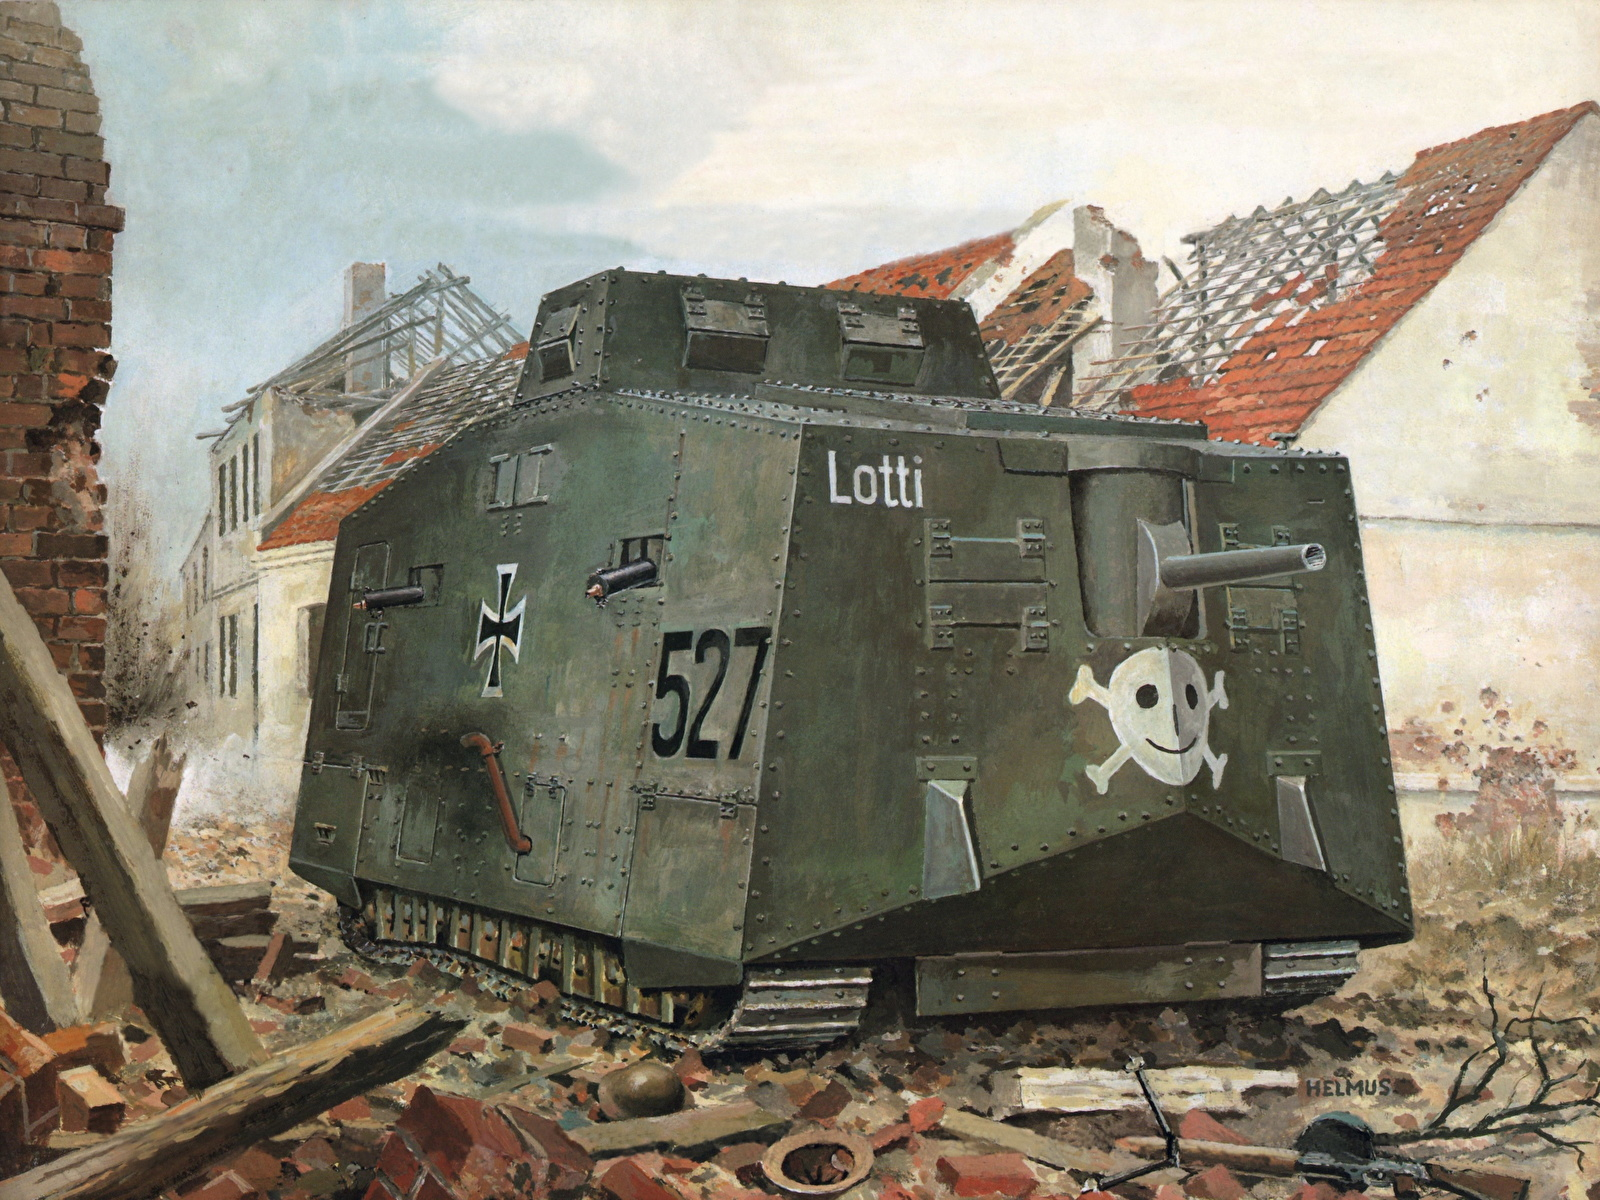 Photos A7v Lotti Painting Art Military 1600x1200